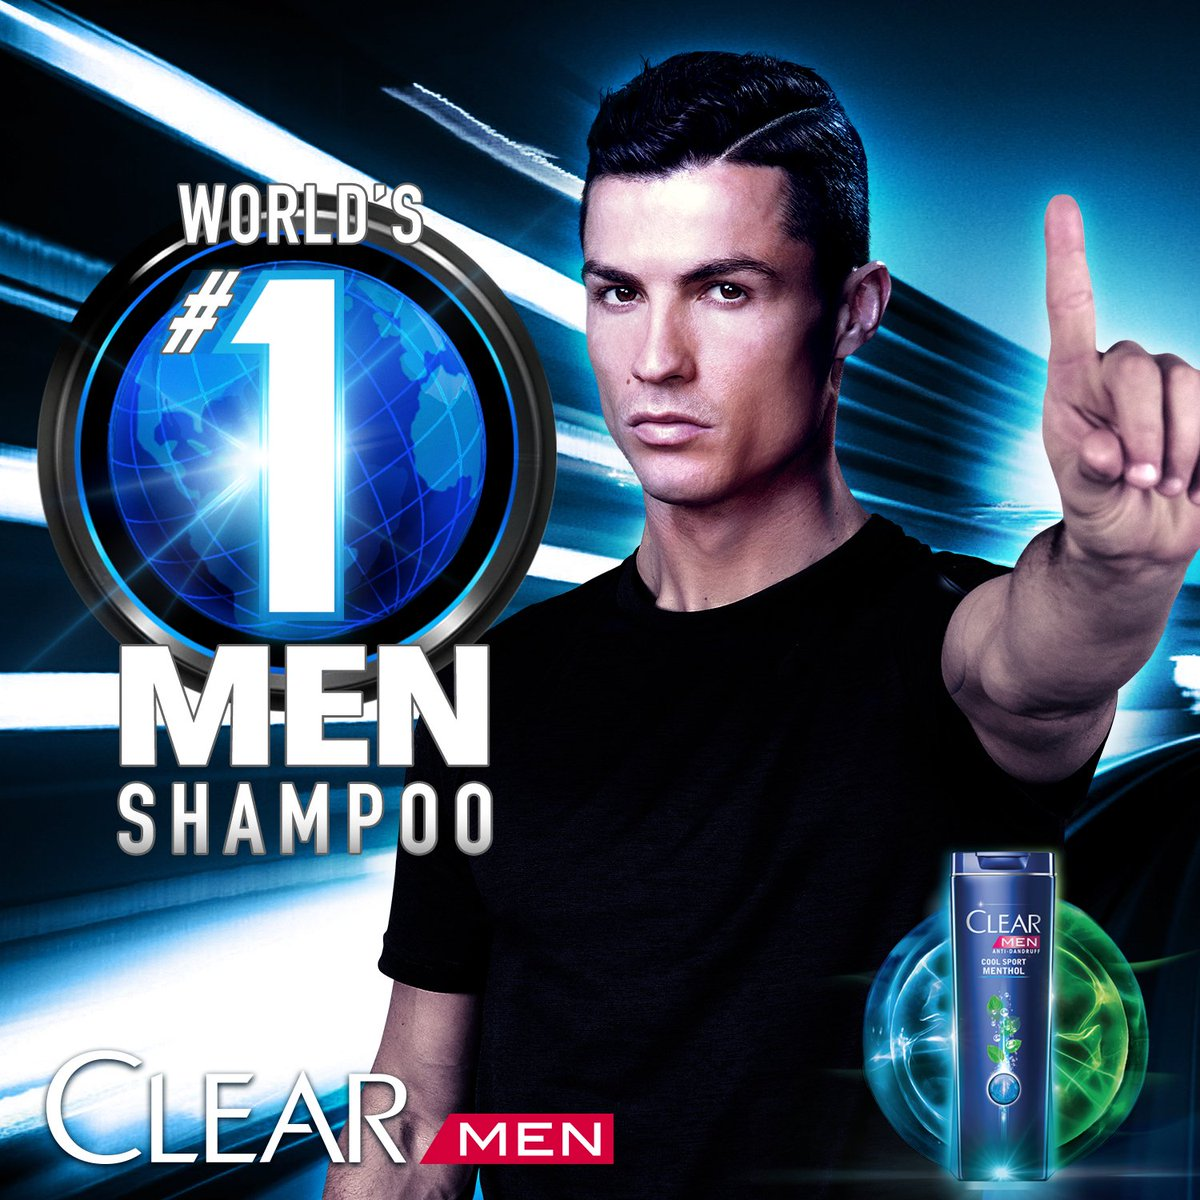 Cristiano Ronaldo On Twitter Clear Men Worlds 1 Shampoo